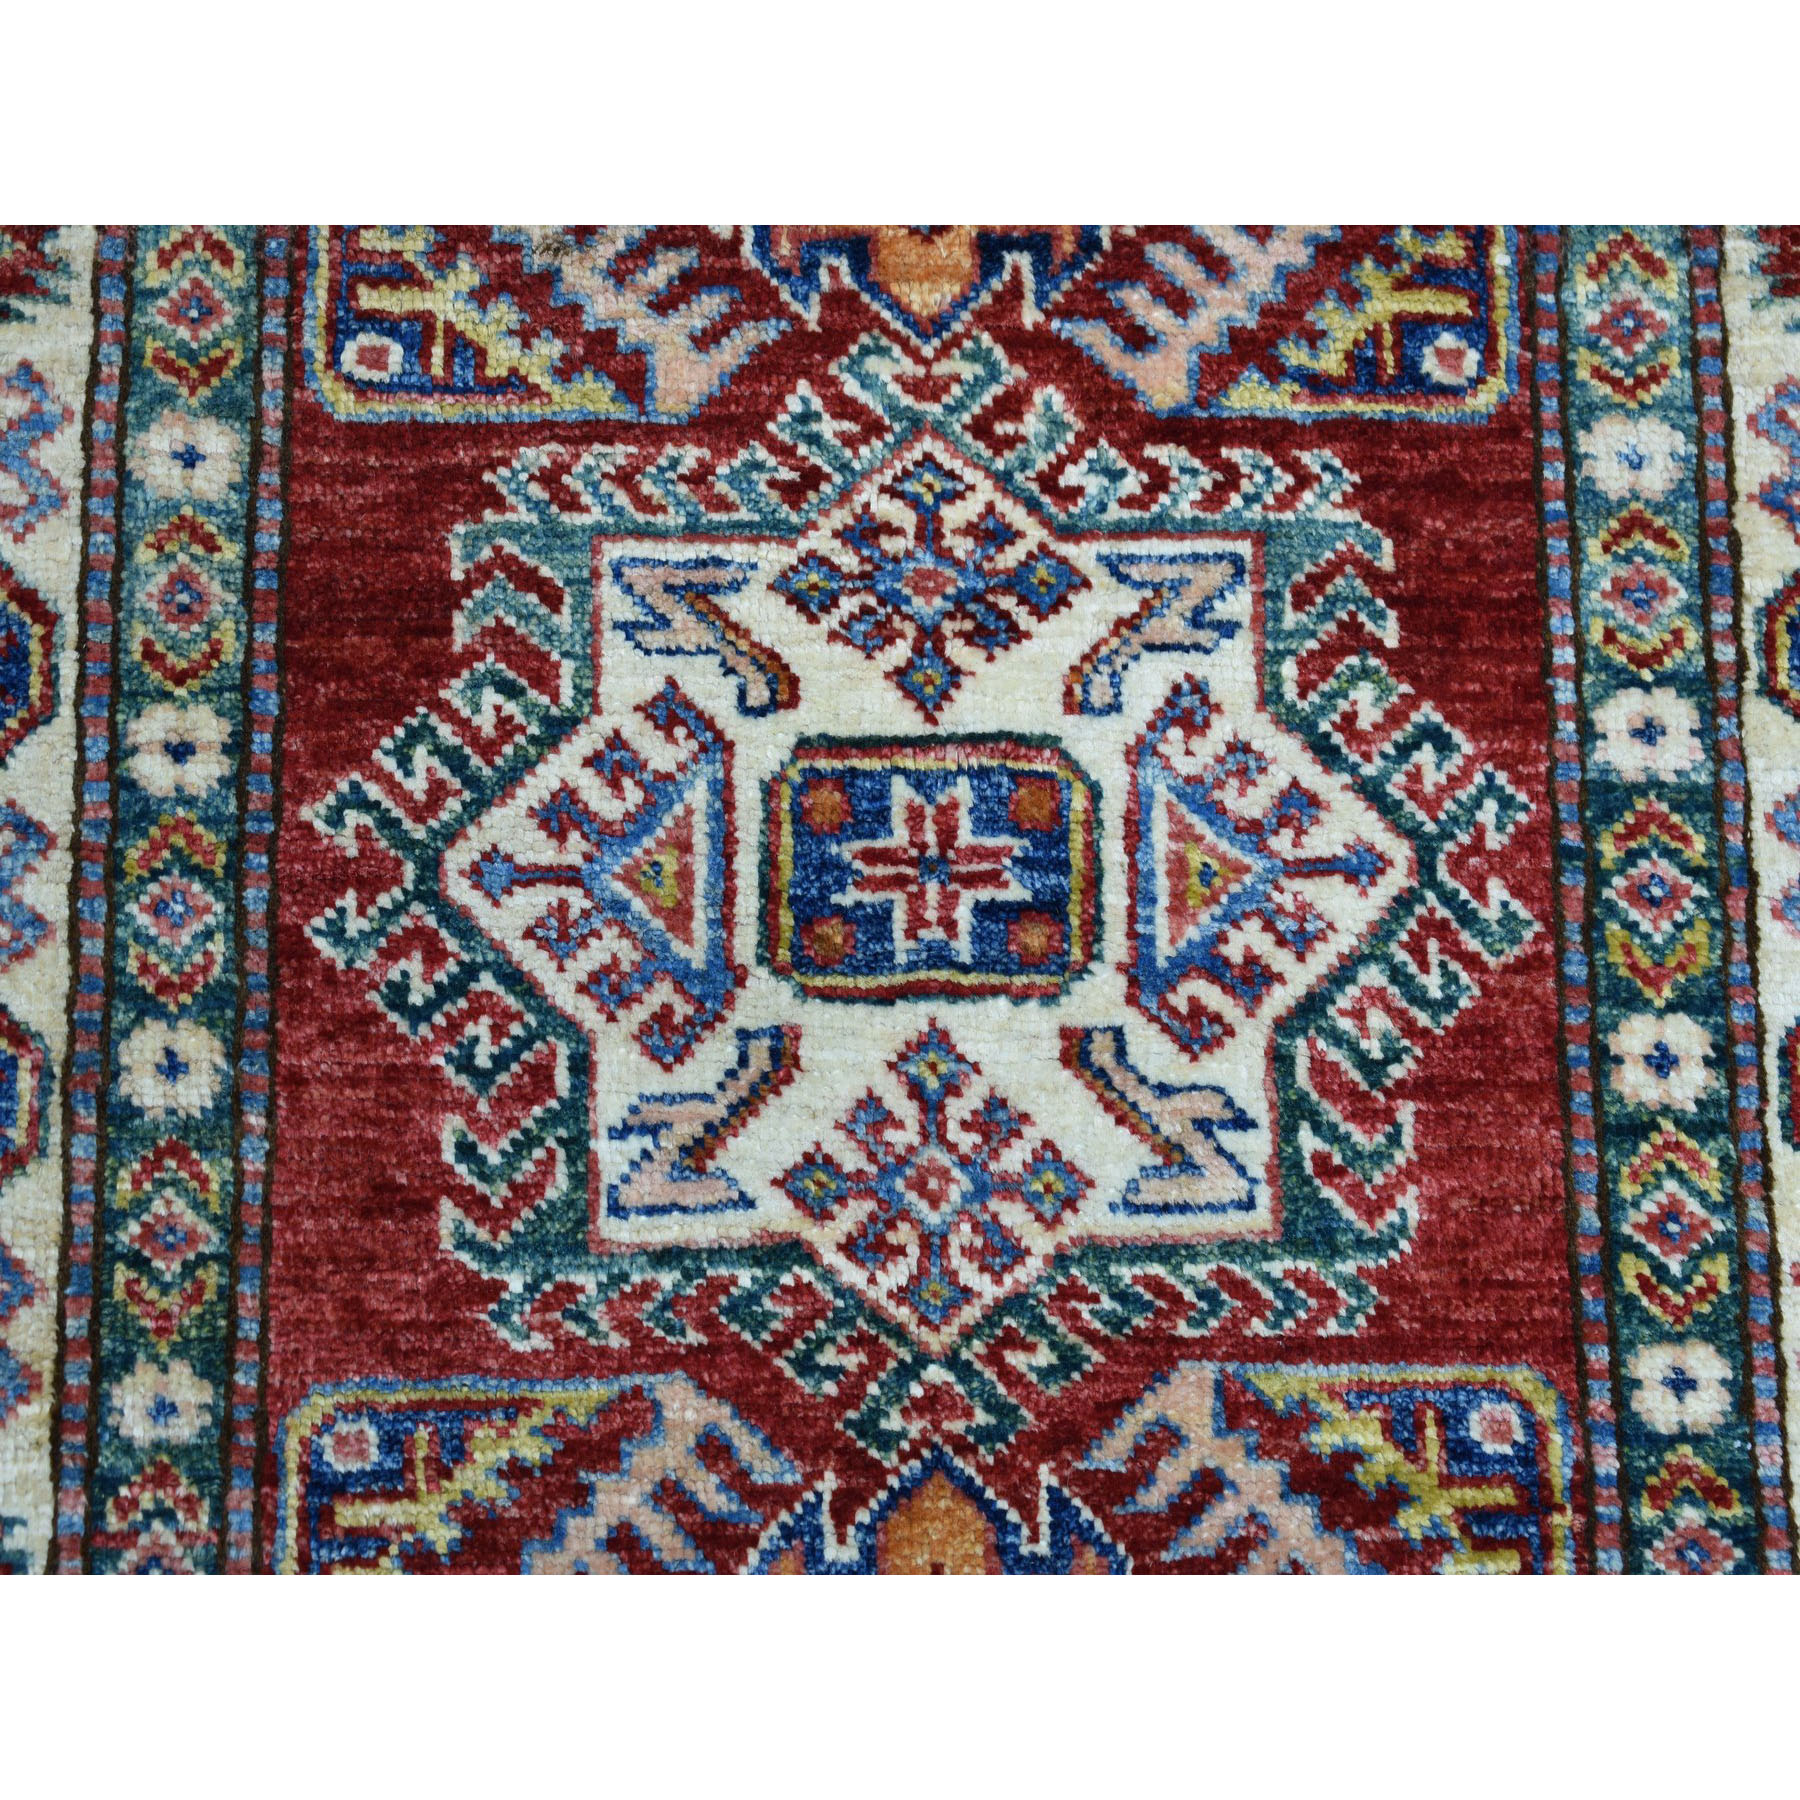 2-10 x4- Red Super Kazak Pure Wool Geometric Design Hand-Knotted Oriental Rug